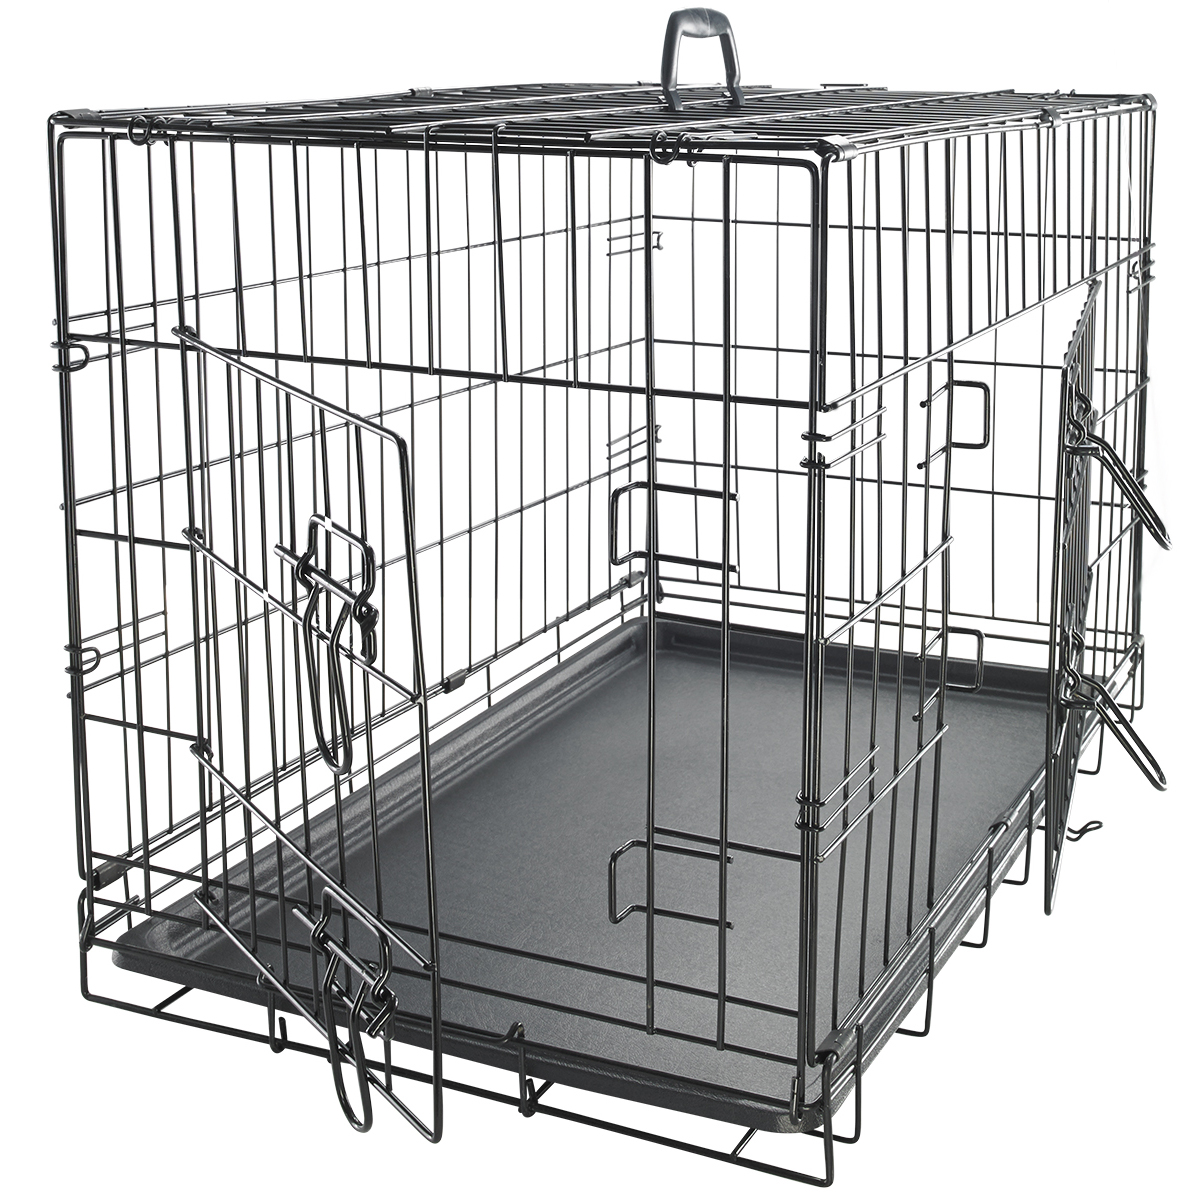 "OxGord 48"" Dog Crate with Divider, Double-Doors Folding Pet Cage with Heavy Duty Metal Wires and Removable ABS Plastic"